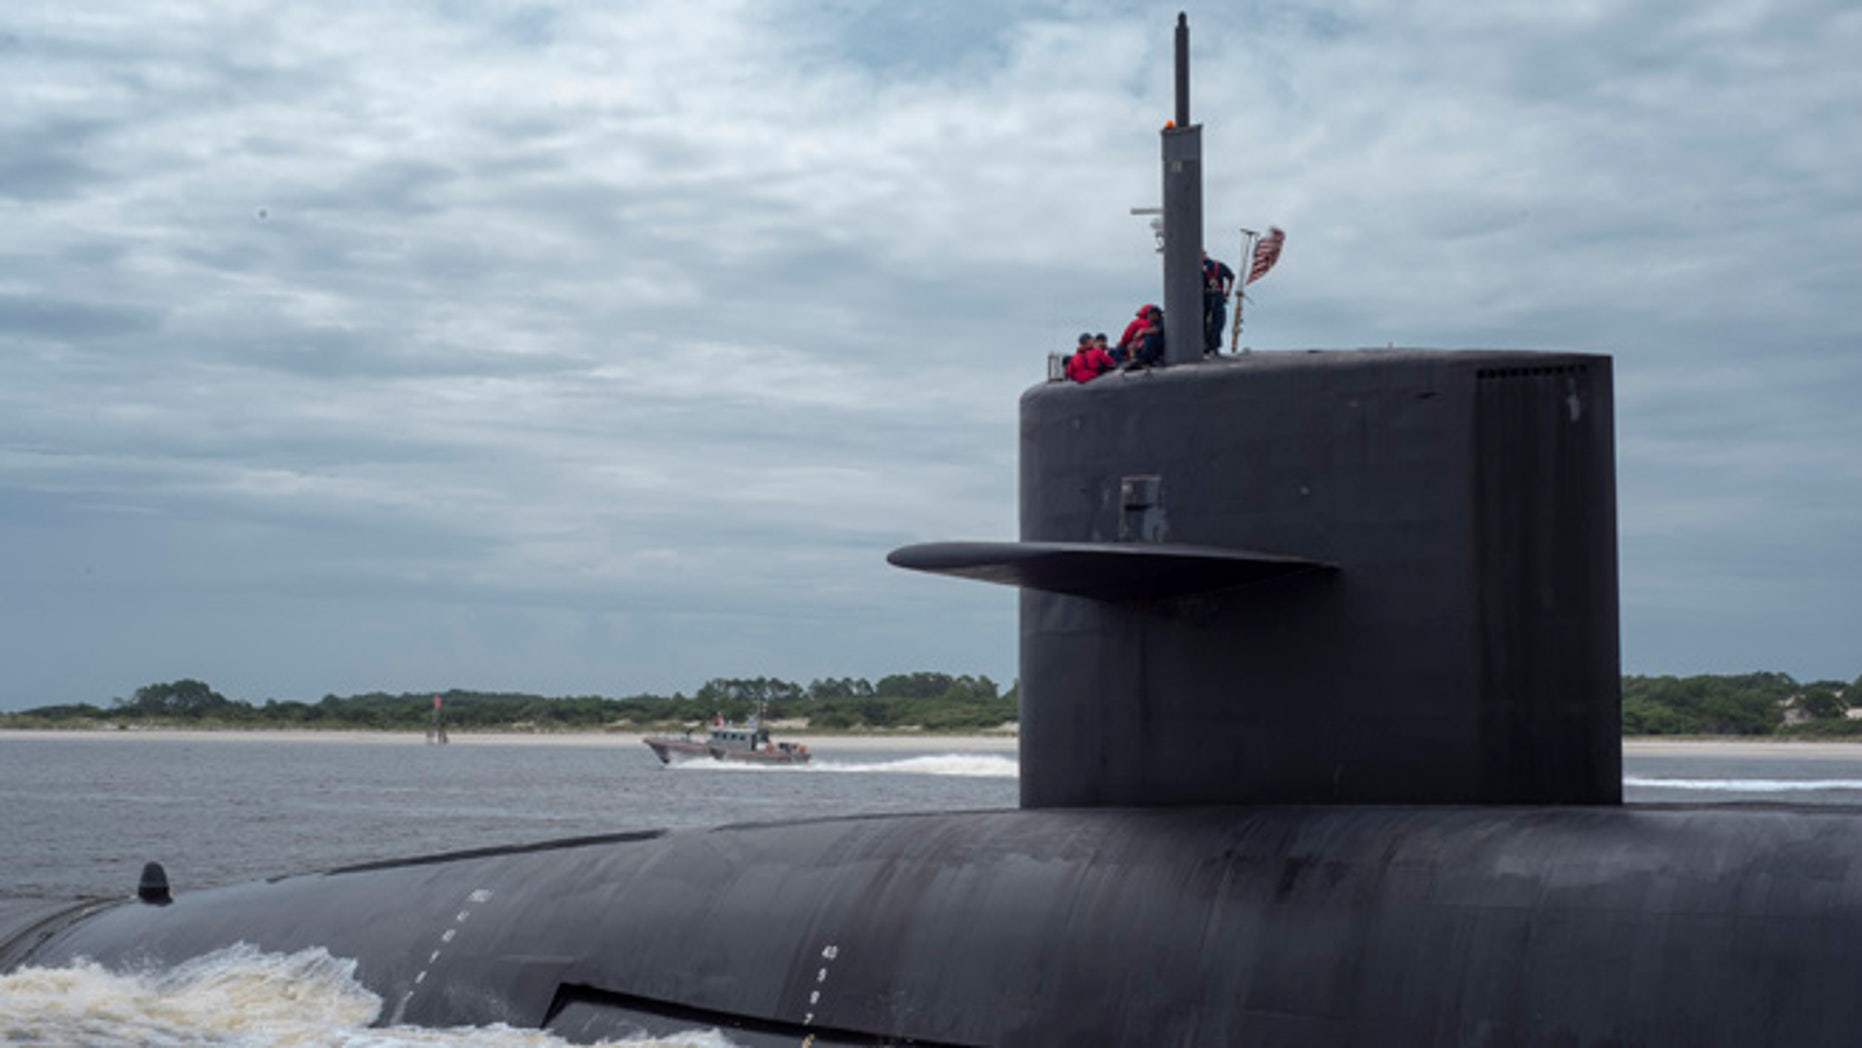 Feb 6, 2013: The Ohio-class ballistic missile submarine USS Tennessee transits the St. Marys Channel as it departs Naval Submarine Base Kings Bay, Georgia in this handout photo. (Reuters)